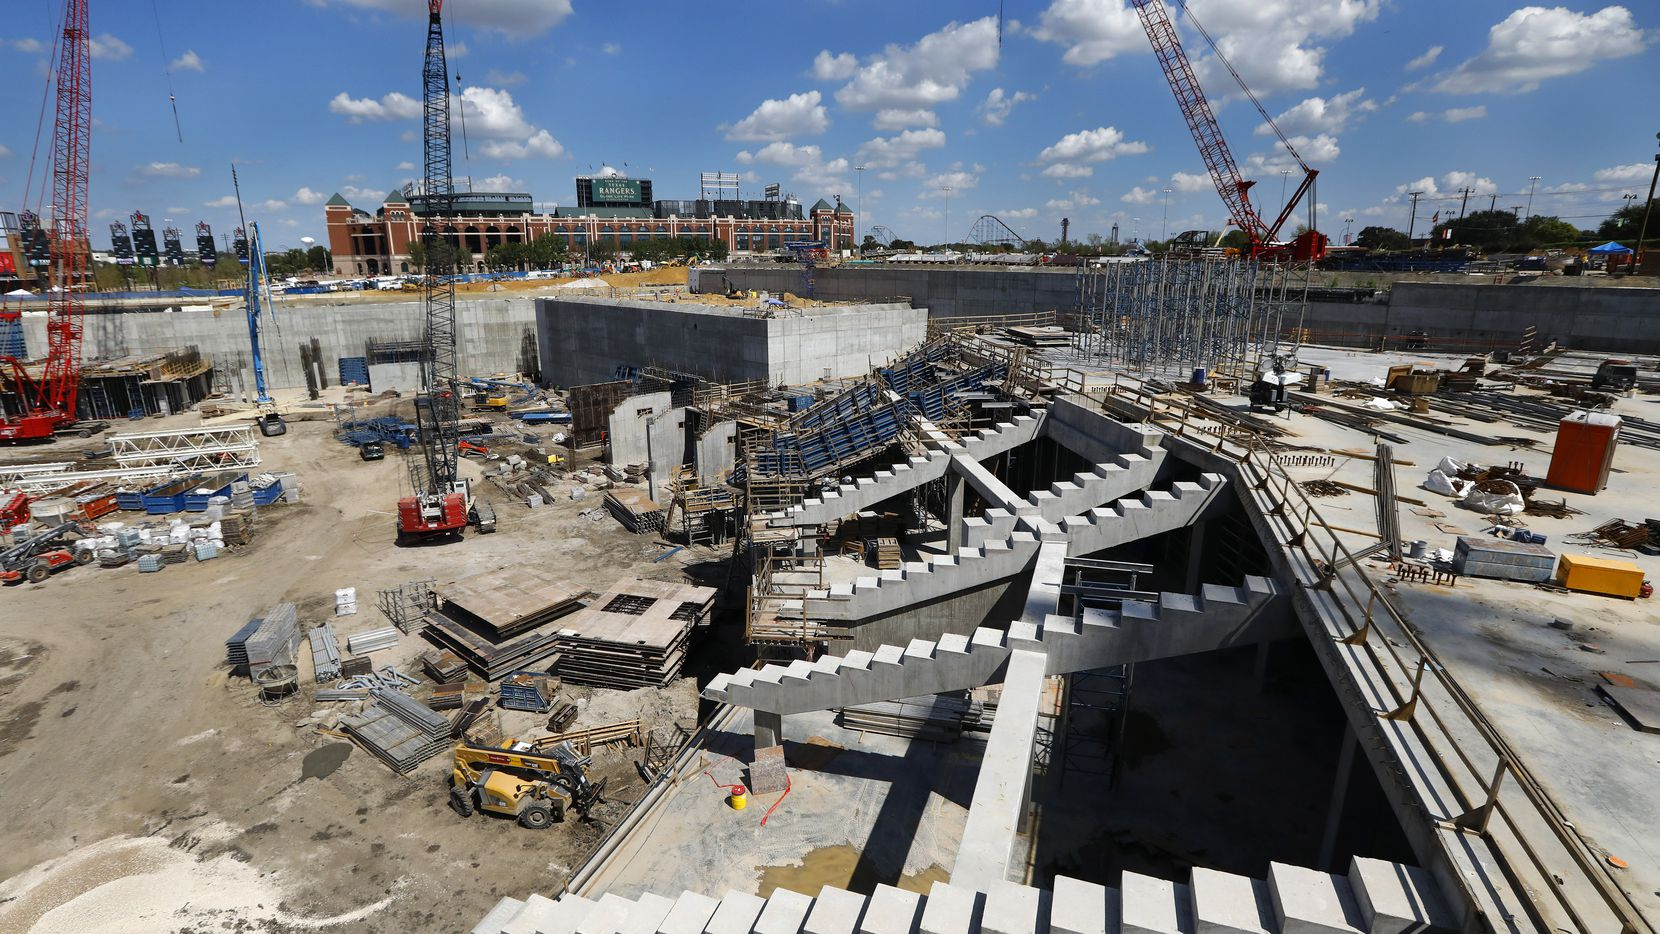 The right field seating supports were already in place in September at the new Globe Life Field under construction in Arlington. The Texas Rangers celebrated the One Million Man Hours by providing a barbecue launch for it's nearly 900 workers. Rangers baseball players joined manager Jeff Banister in handing out construction helmet stickers marking the occasion. They also signed autographs and posed for photos.